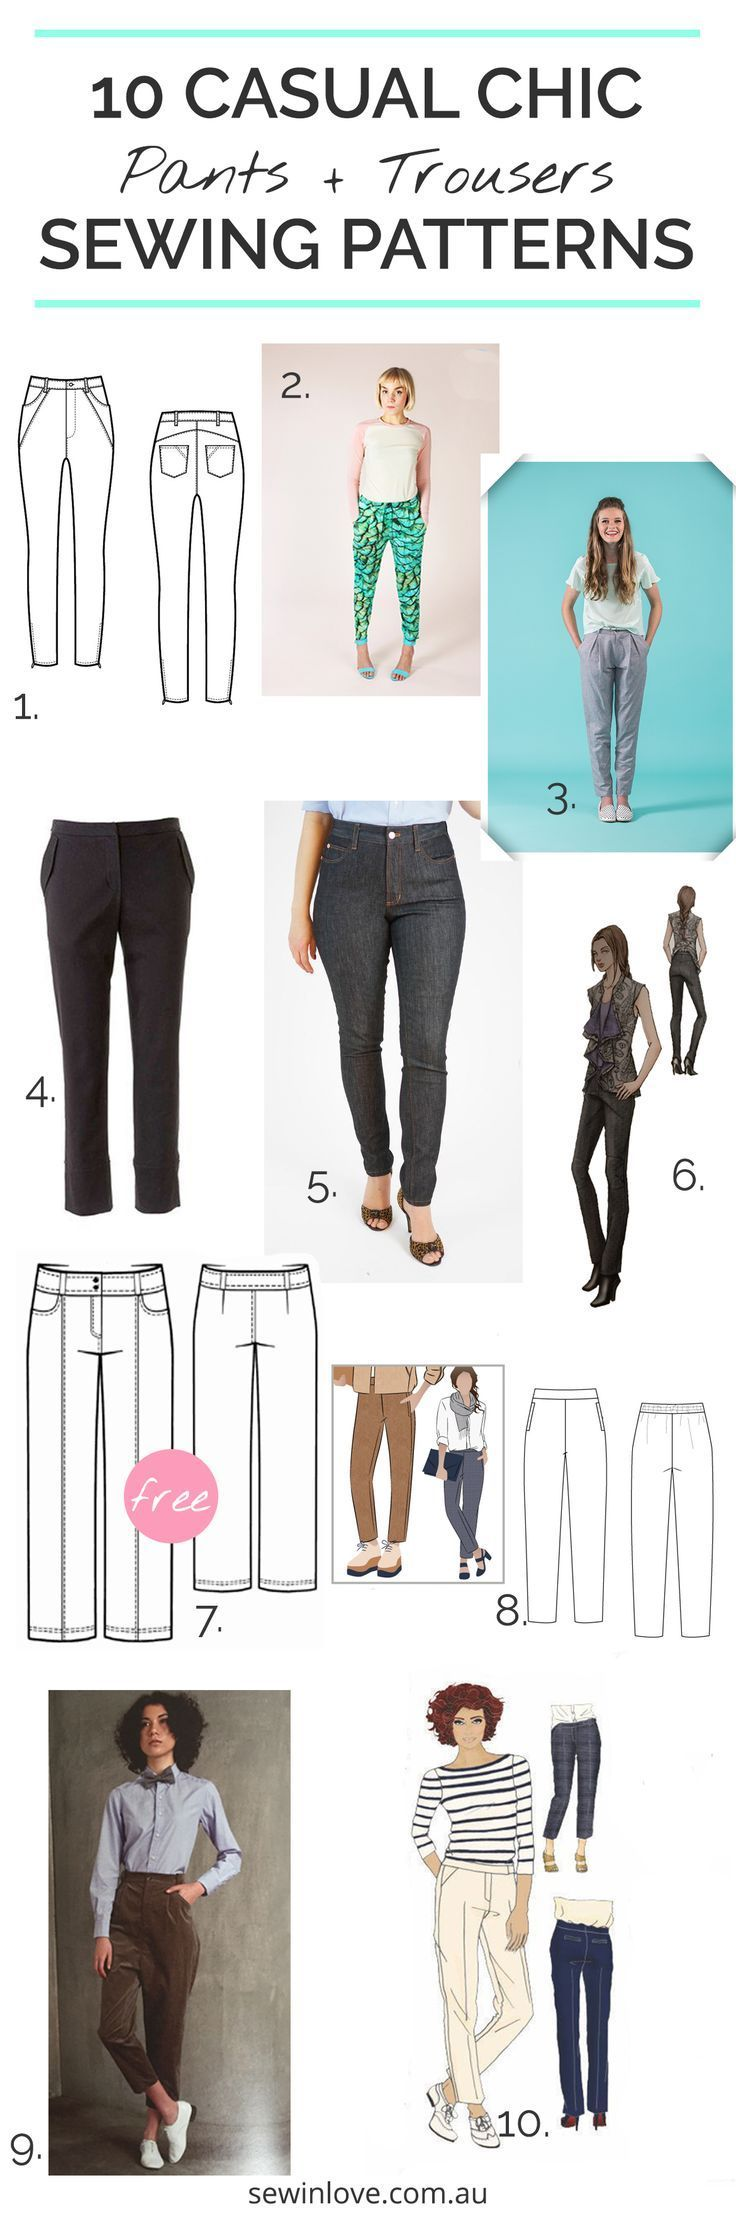 10 Pants / Trousers Sewing Patterns   Looking to sew a pair of pants for yourself? Here's 10 casual and chic options for your handmade wardrobe.